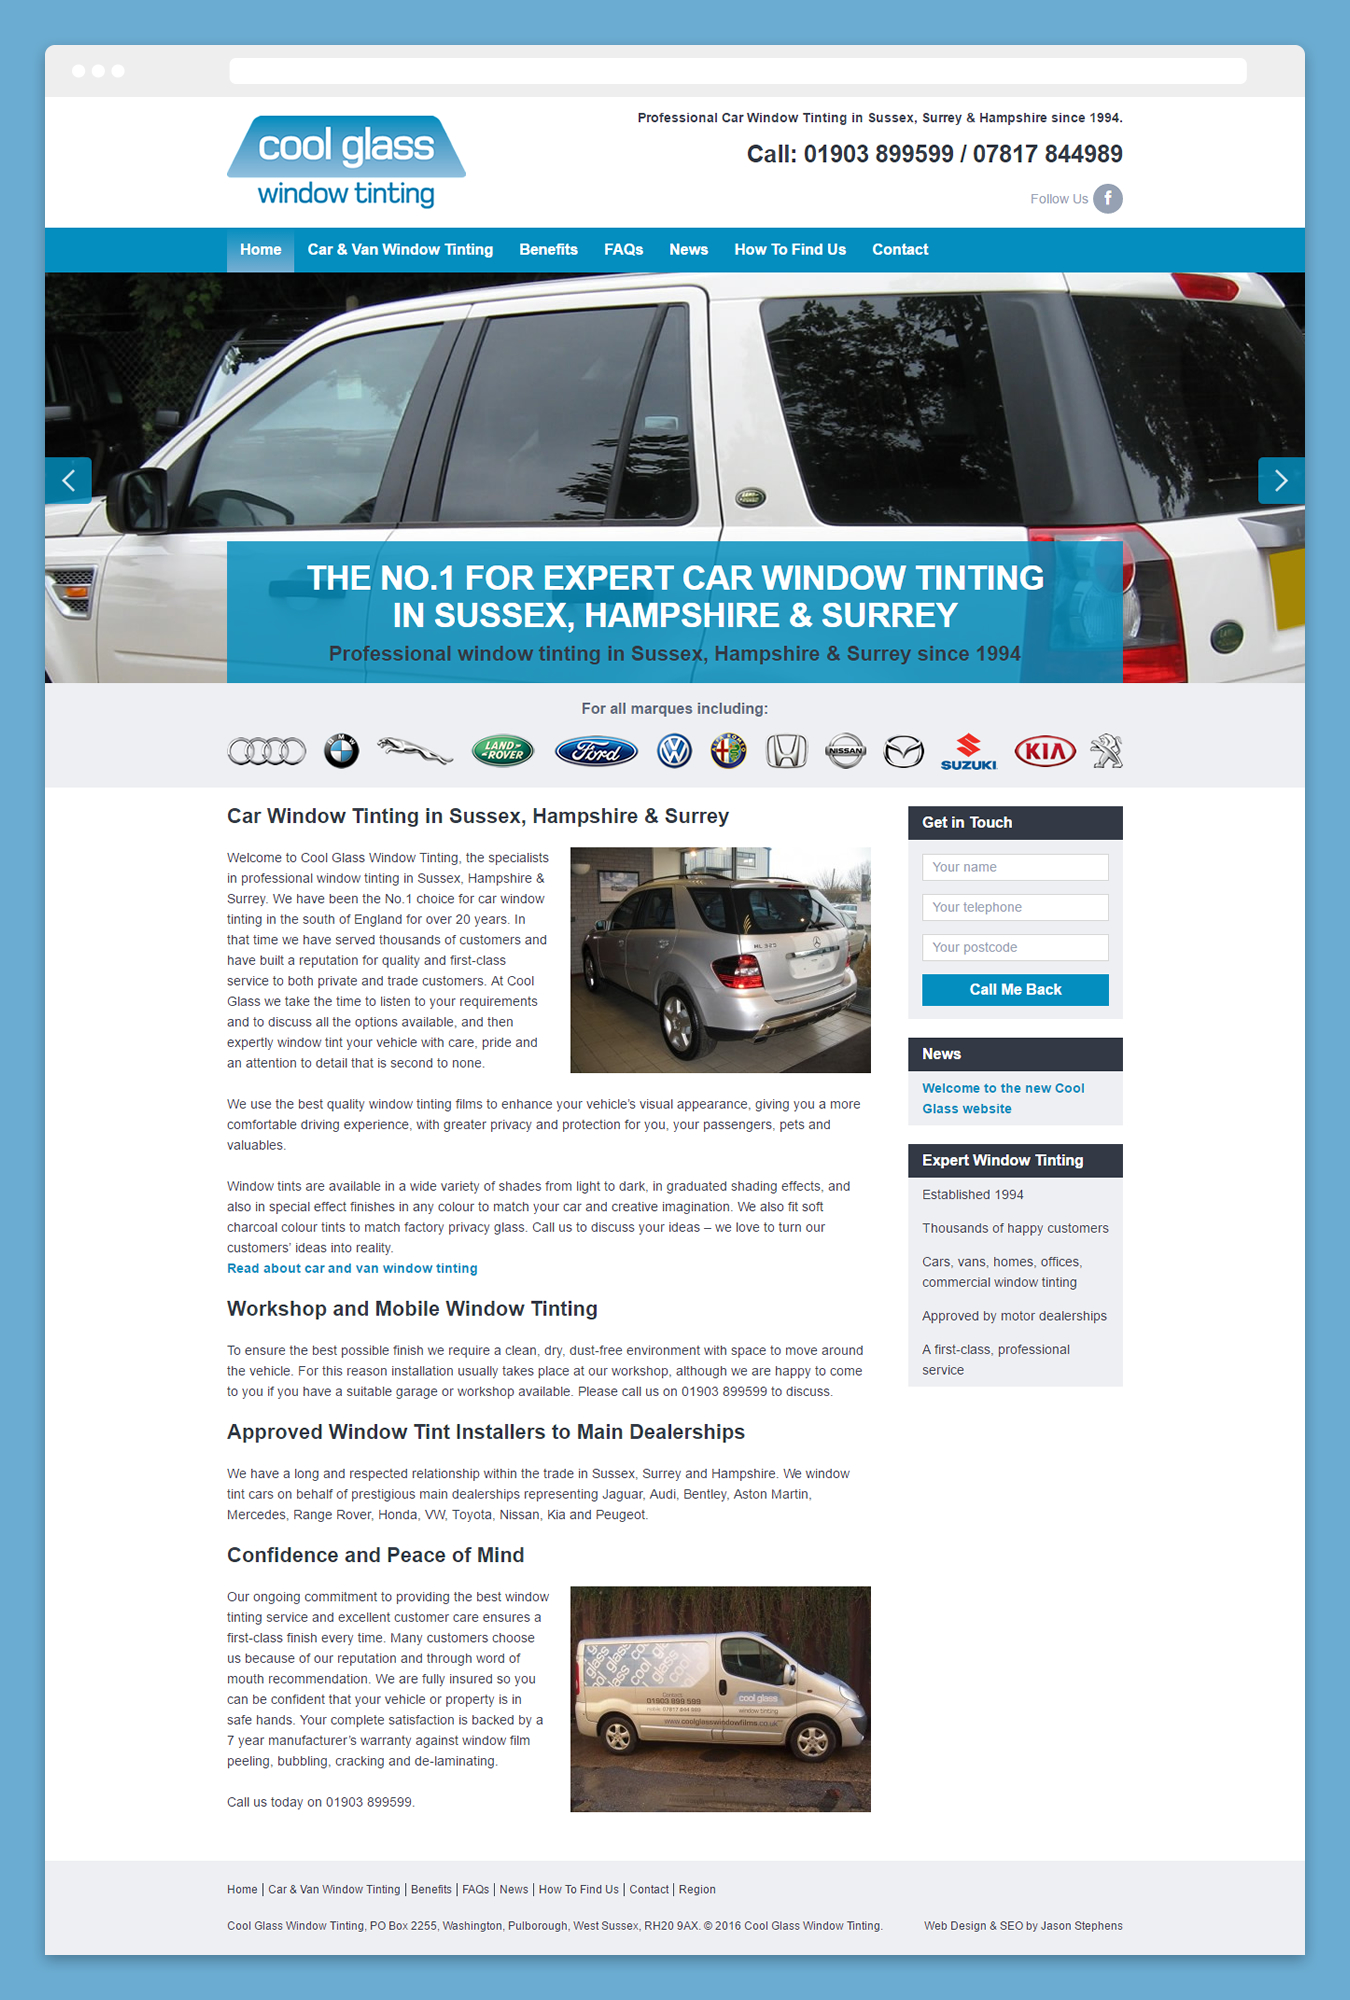 Screenshot showing the new Cool Glass website Home page